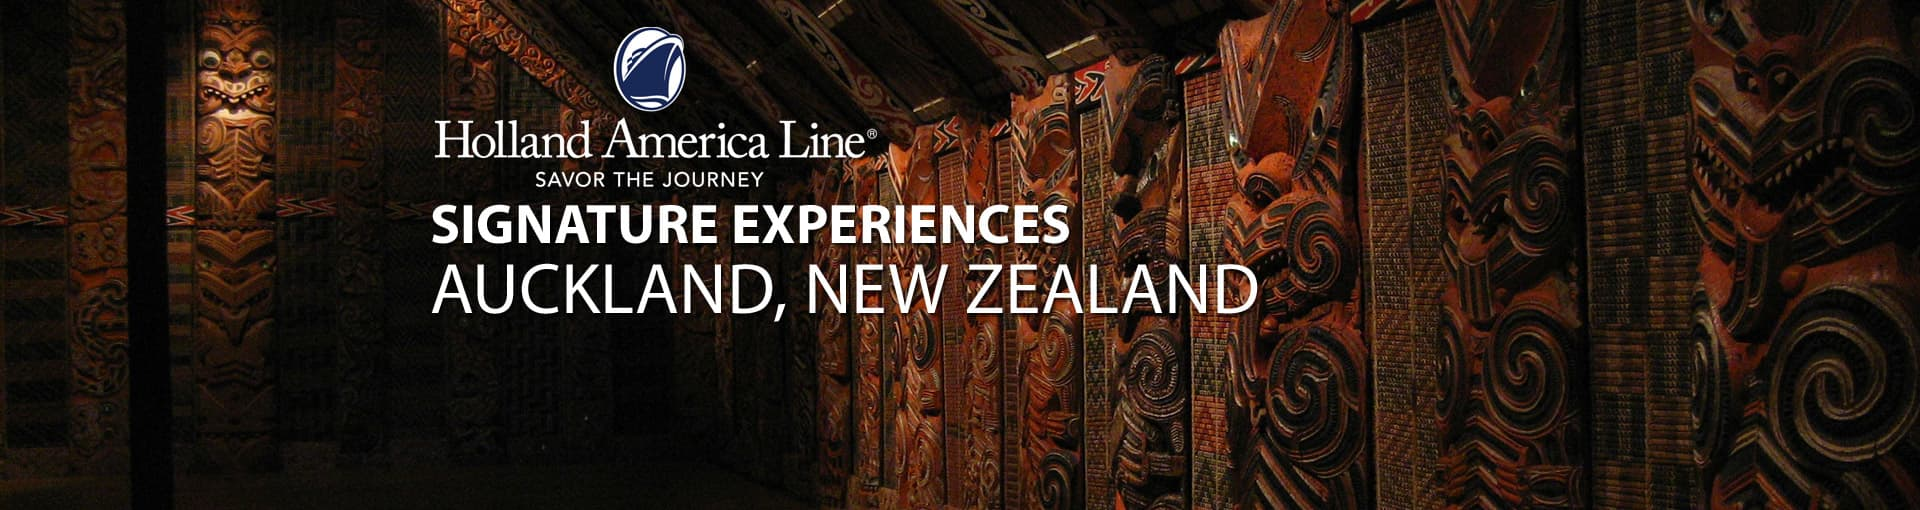 Holland America Signature Experiences - Auckland, New Zealand